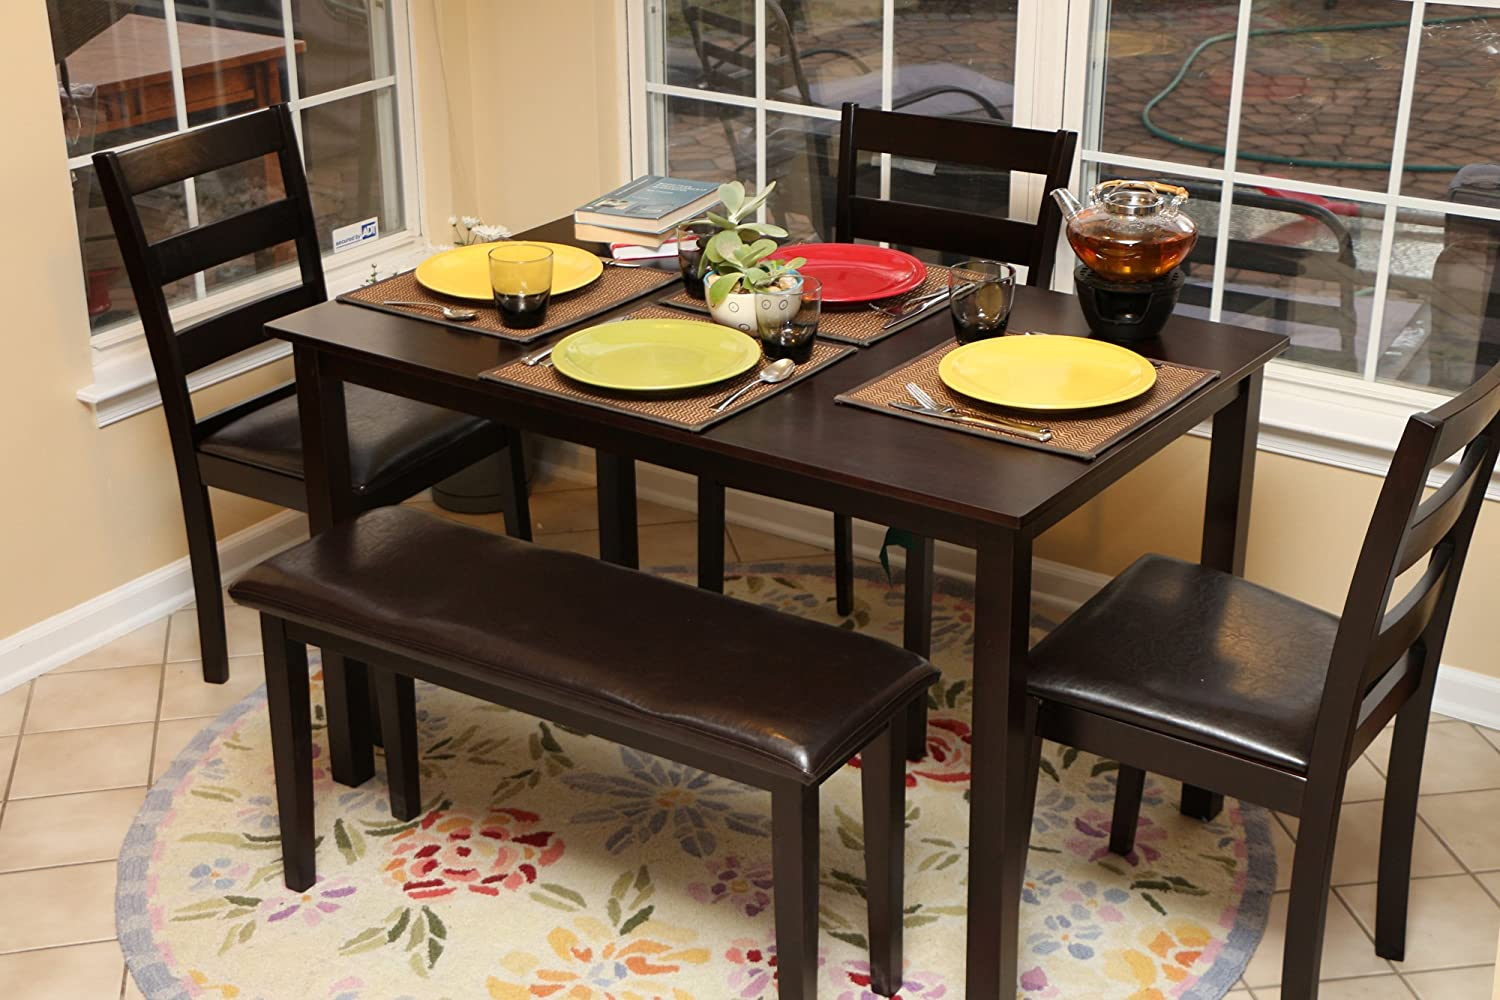 Amazon.com - Home Life 5pc Dining Dinette Table Chairs \u0026 Bench Set Espresso Finish 150236 - Table \u0026 Chair Sets : oak table and chair sets - pezcame.com